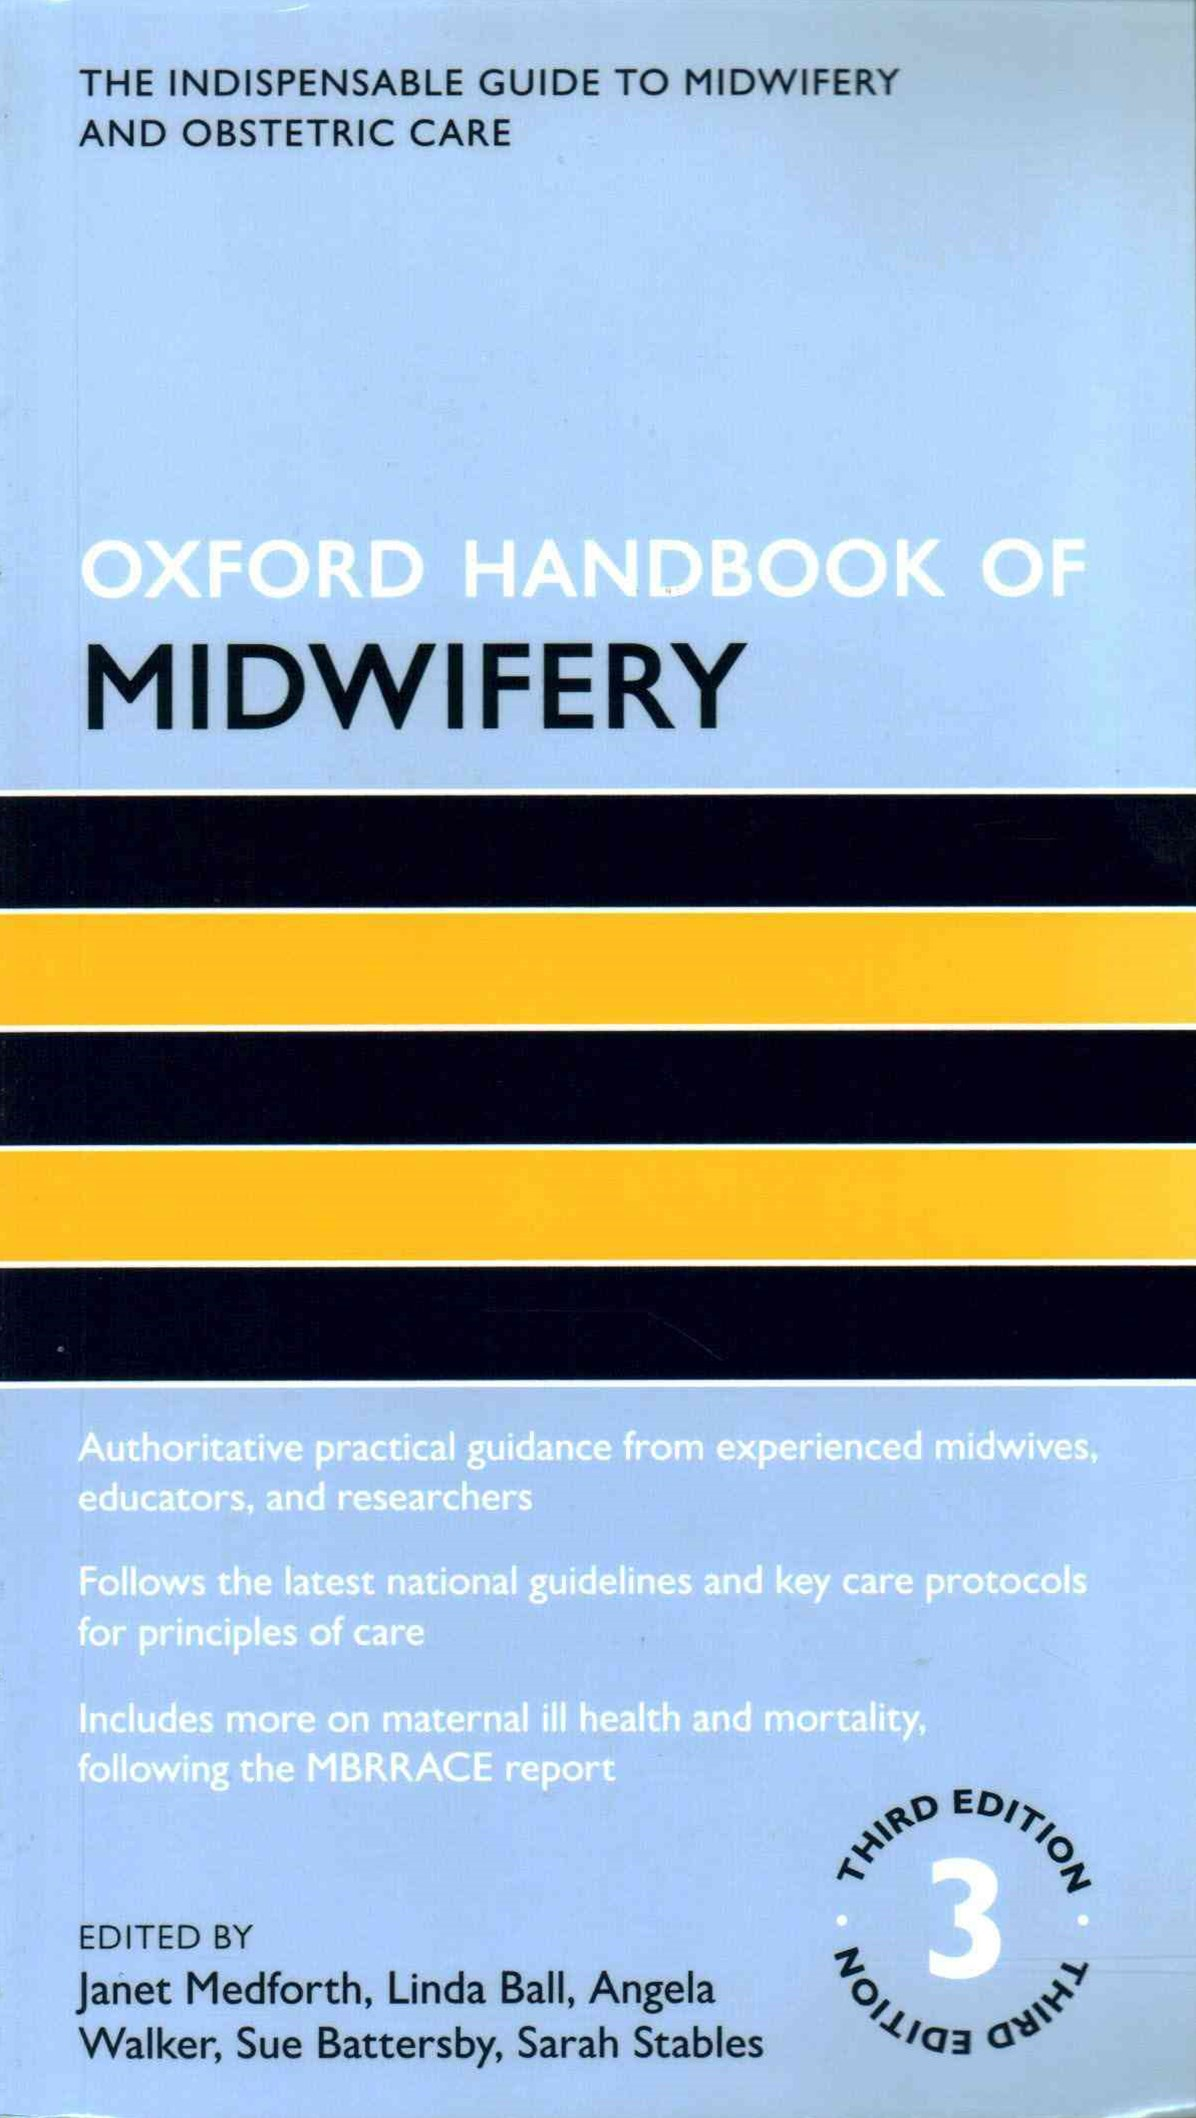 Oxford Handbook of Midwifery